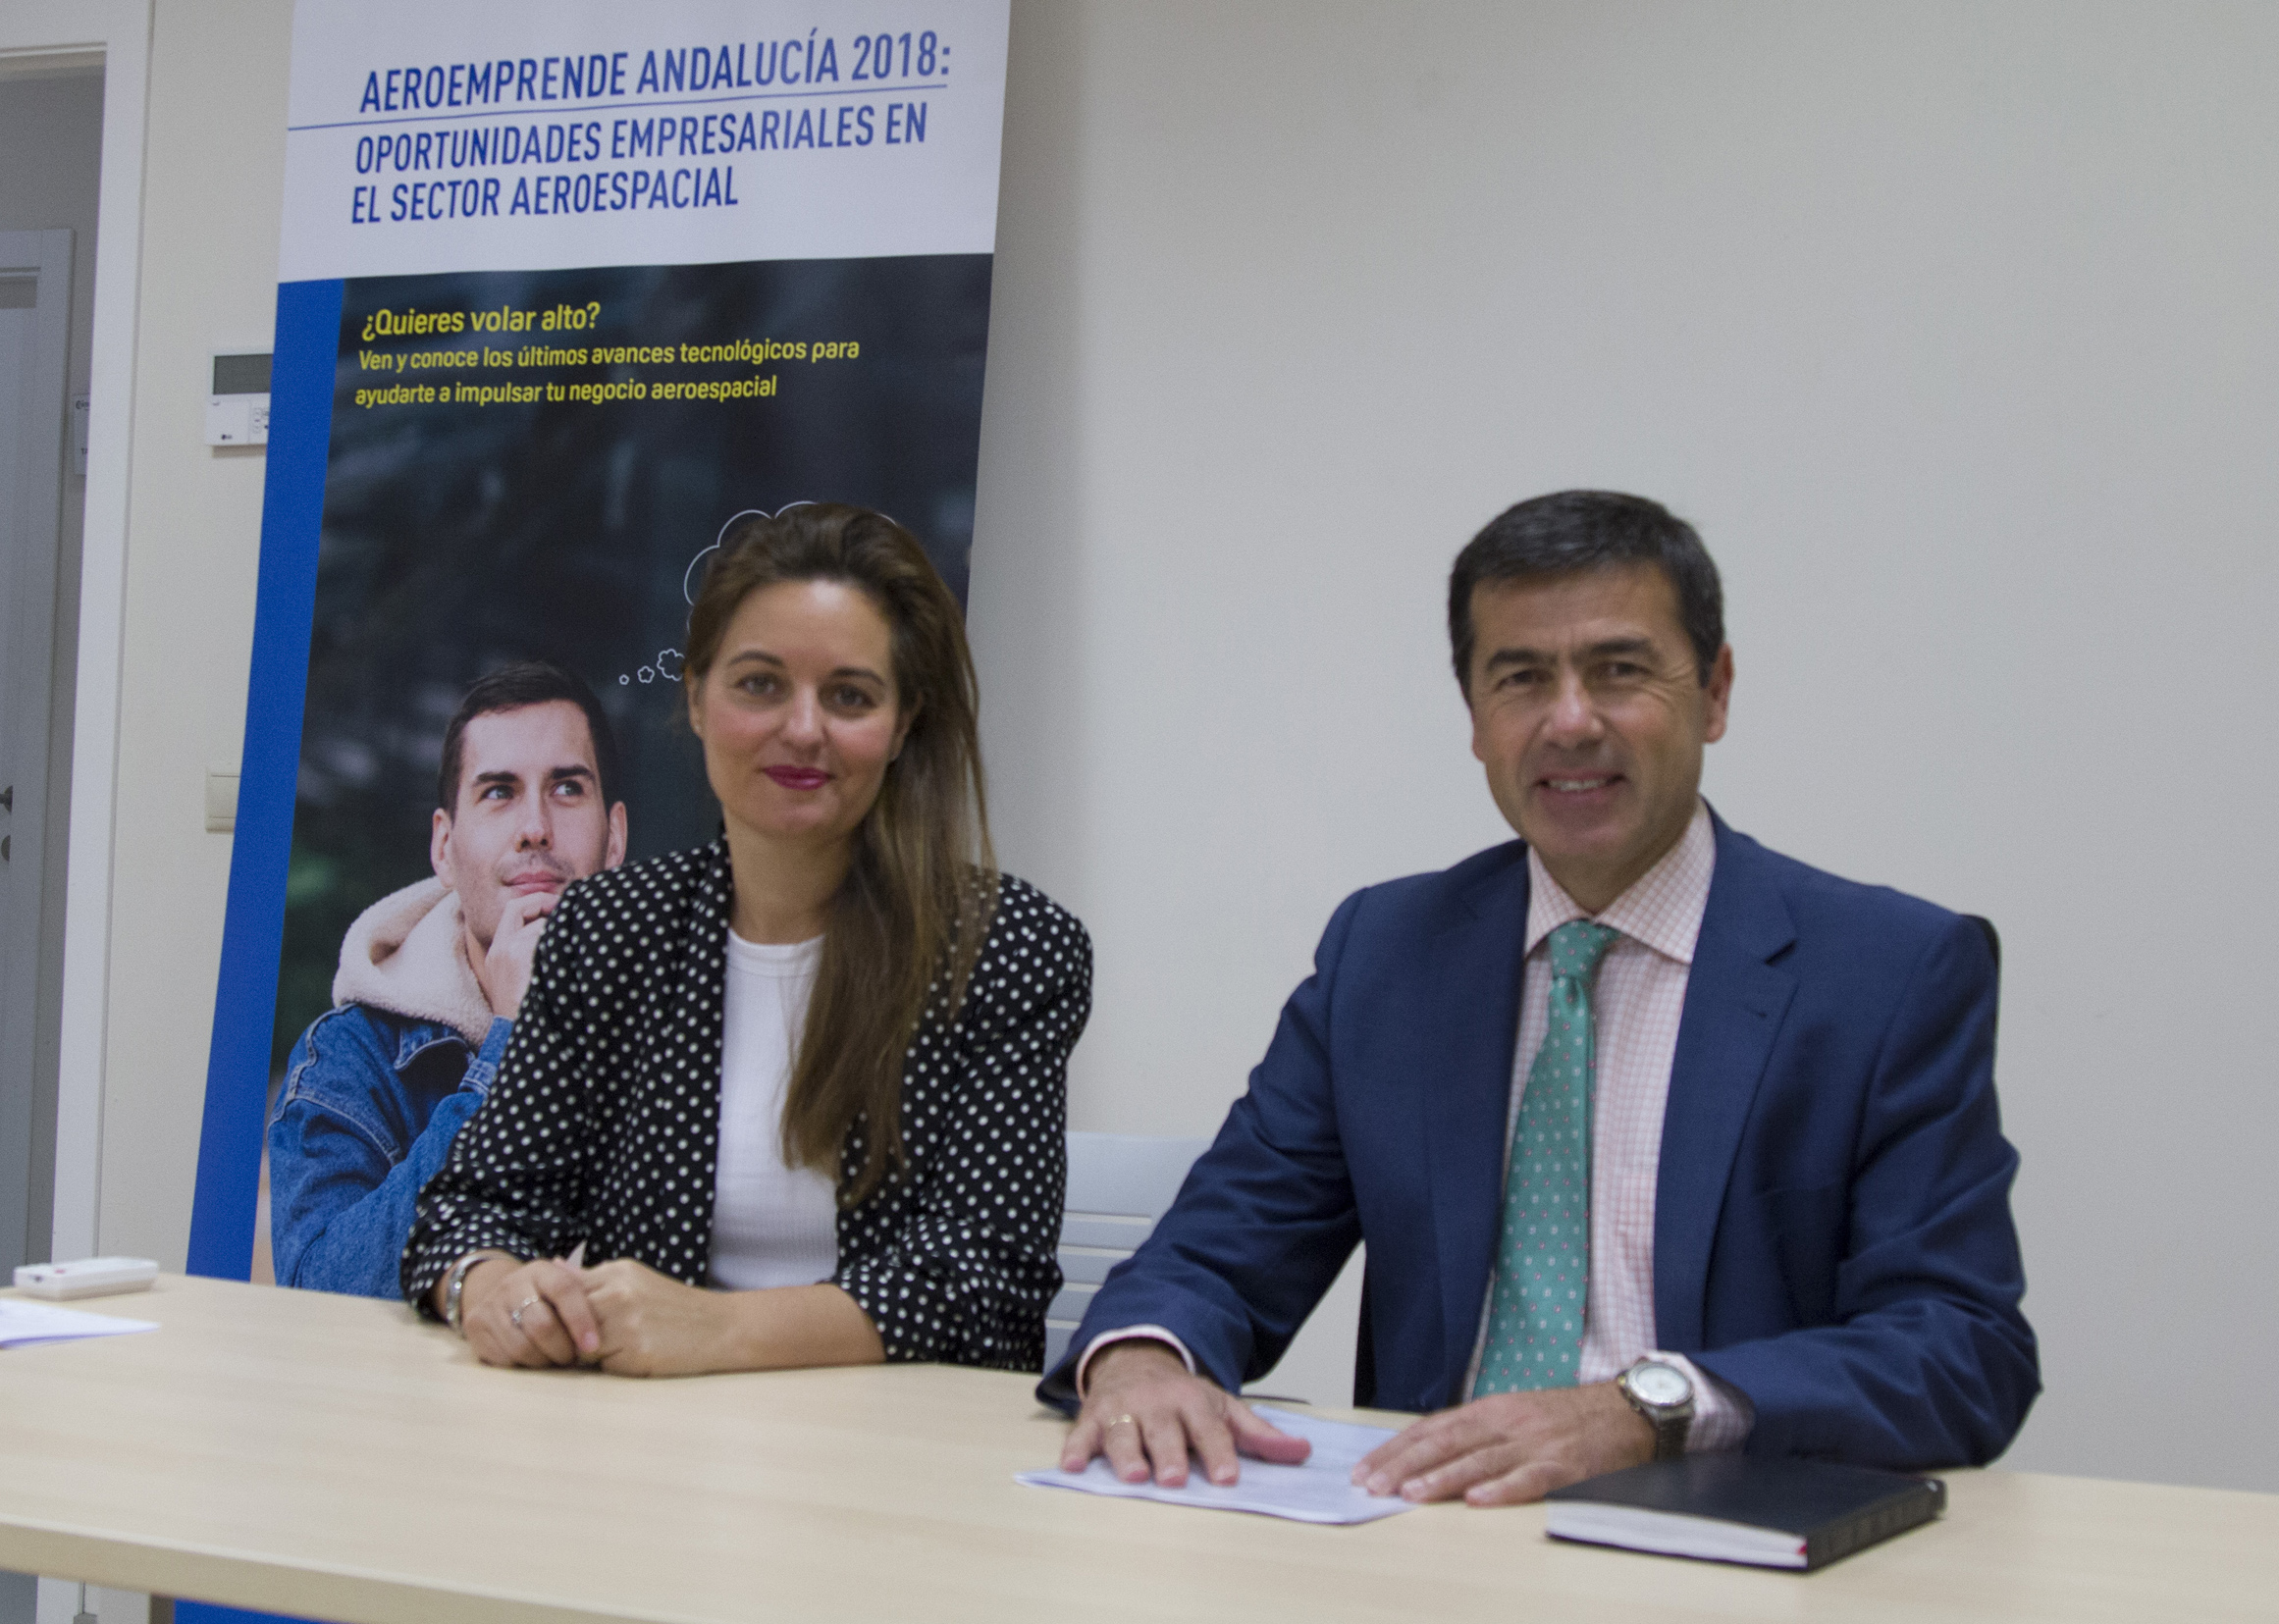 CATEC brings Andalusian entrepreneurs and SMEs the latest technologies in the sector to help them boost their business